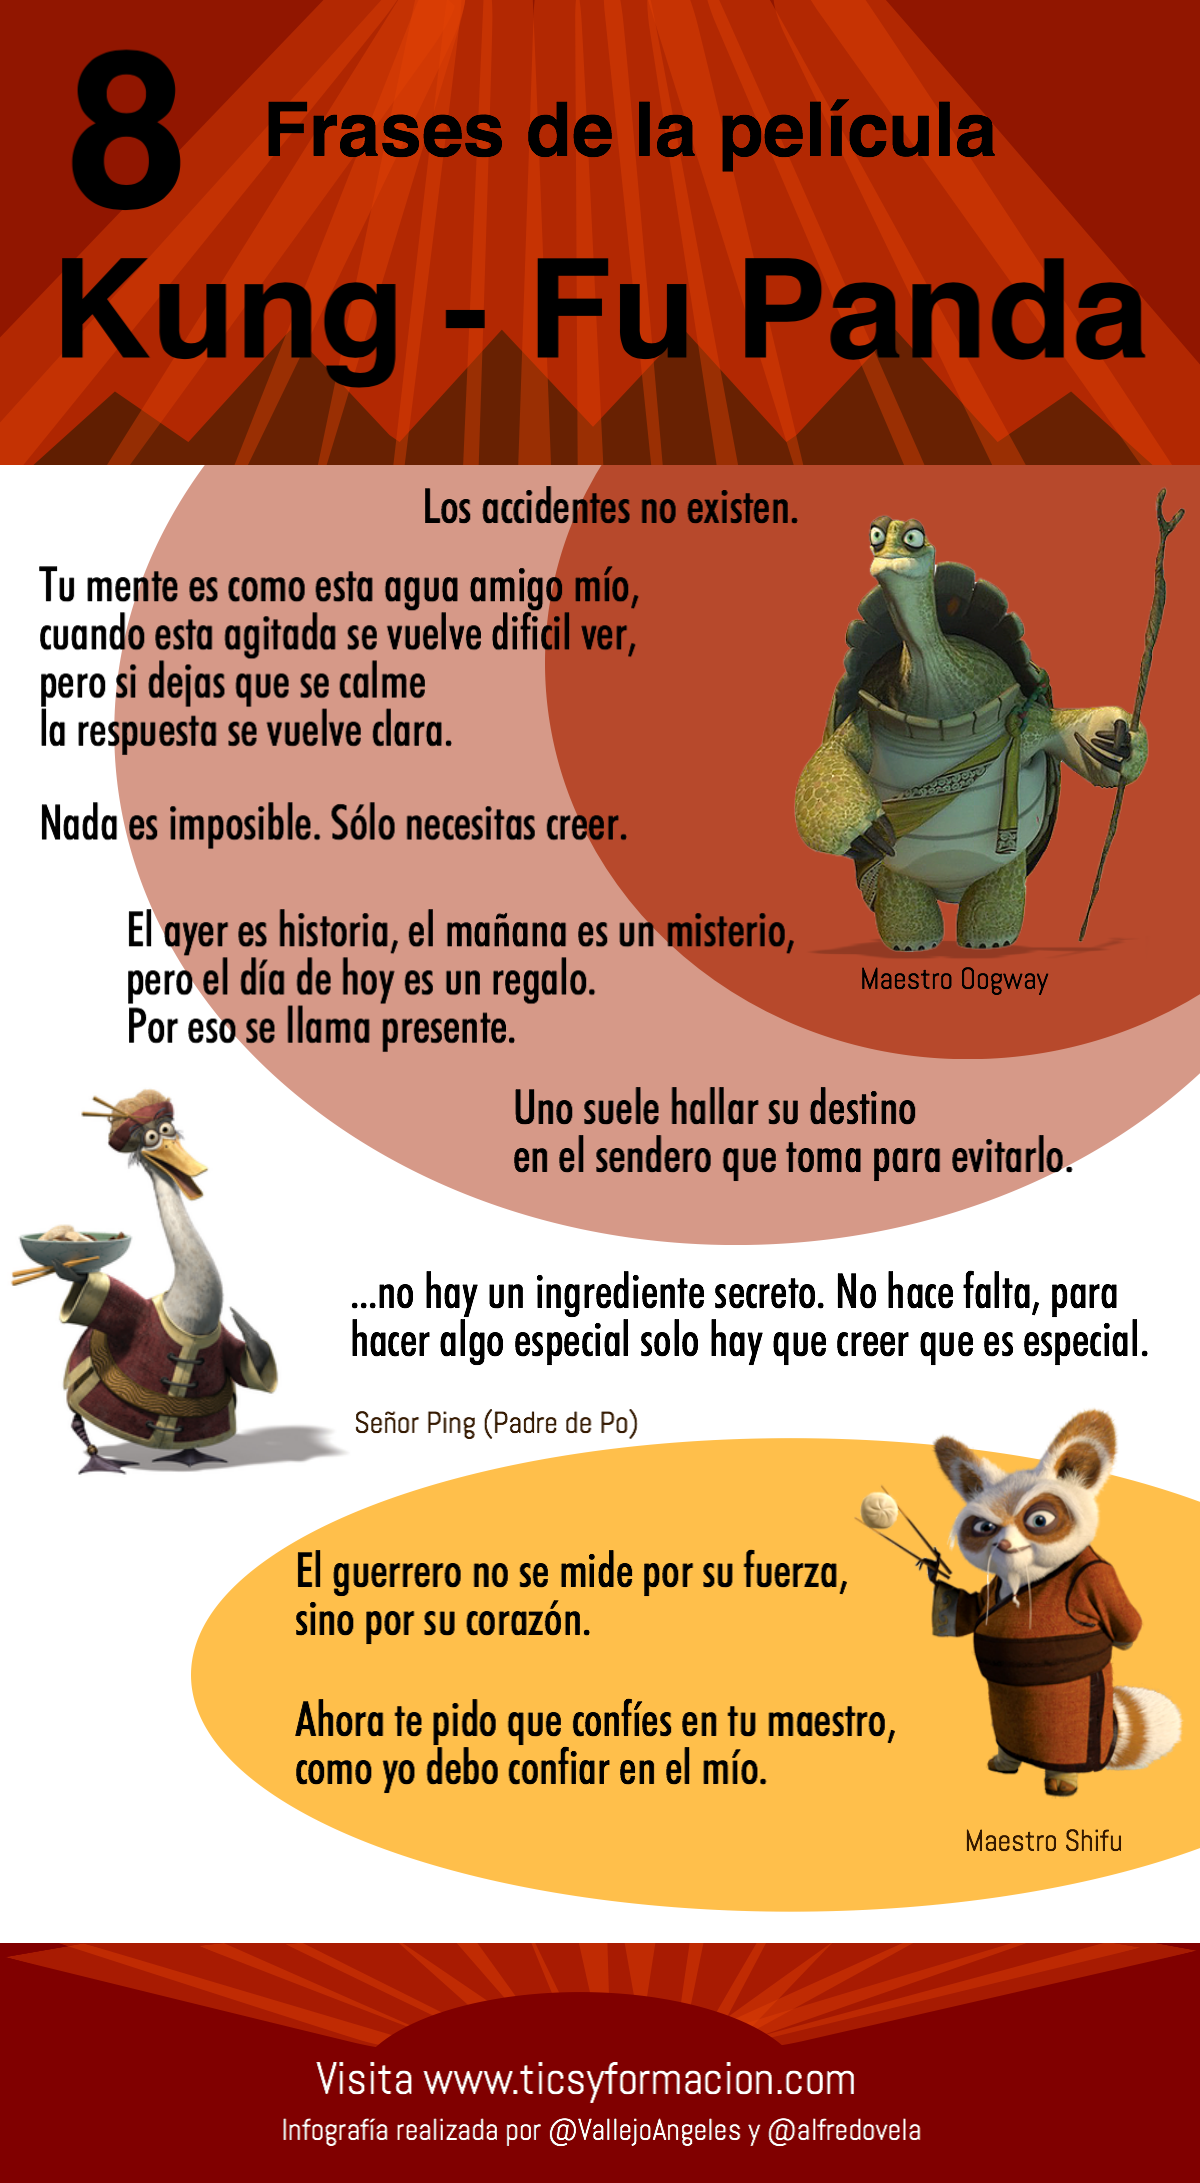 Best Kung Fu Panda 3 Frases Shifu Image Collection